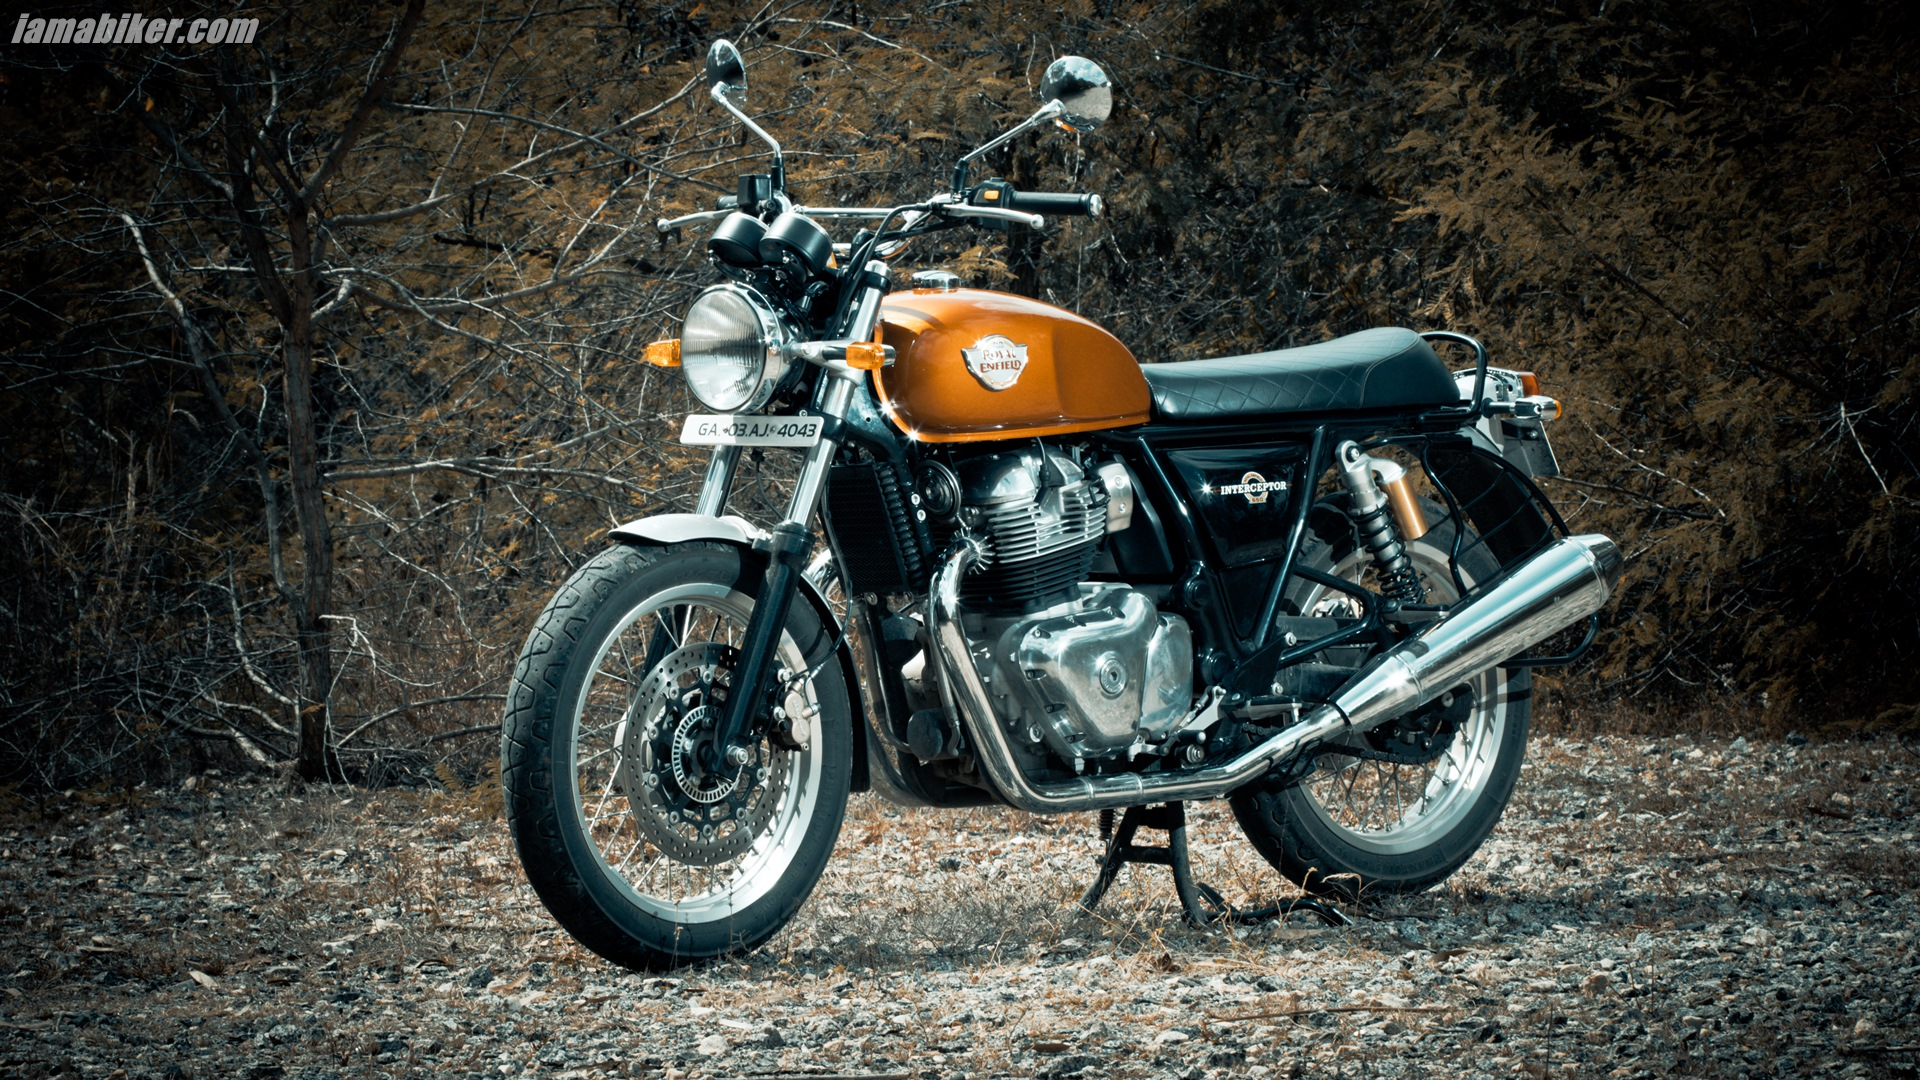 Interceptor 650 HD wallpapers Royal Enfield